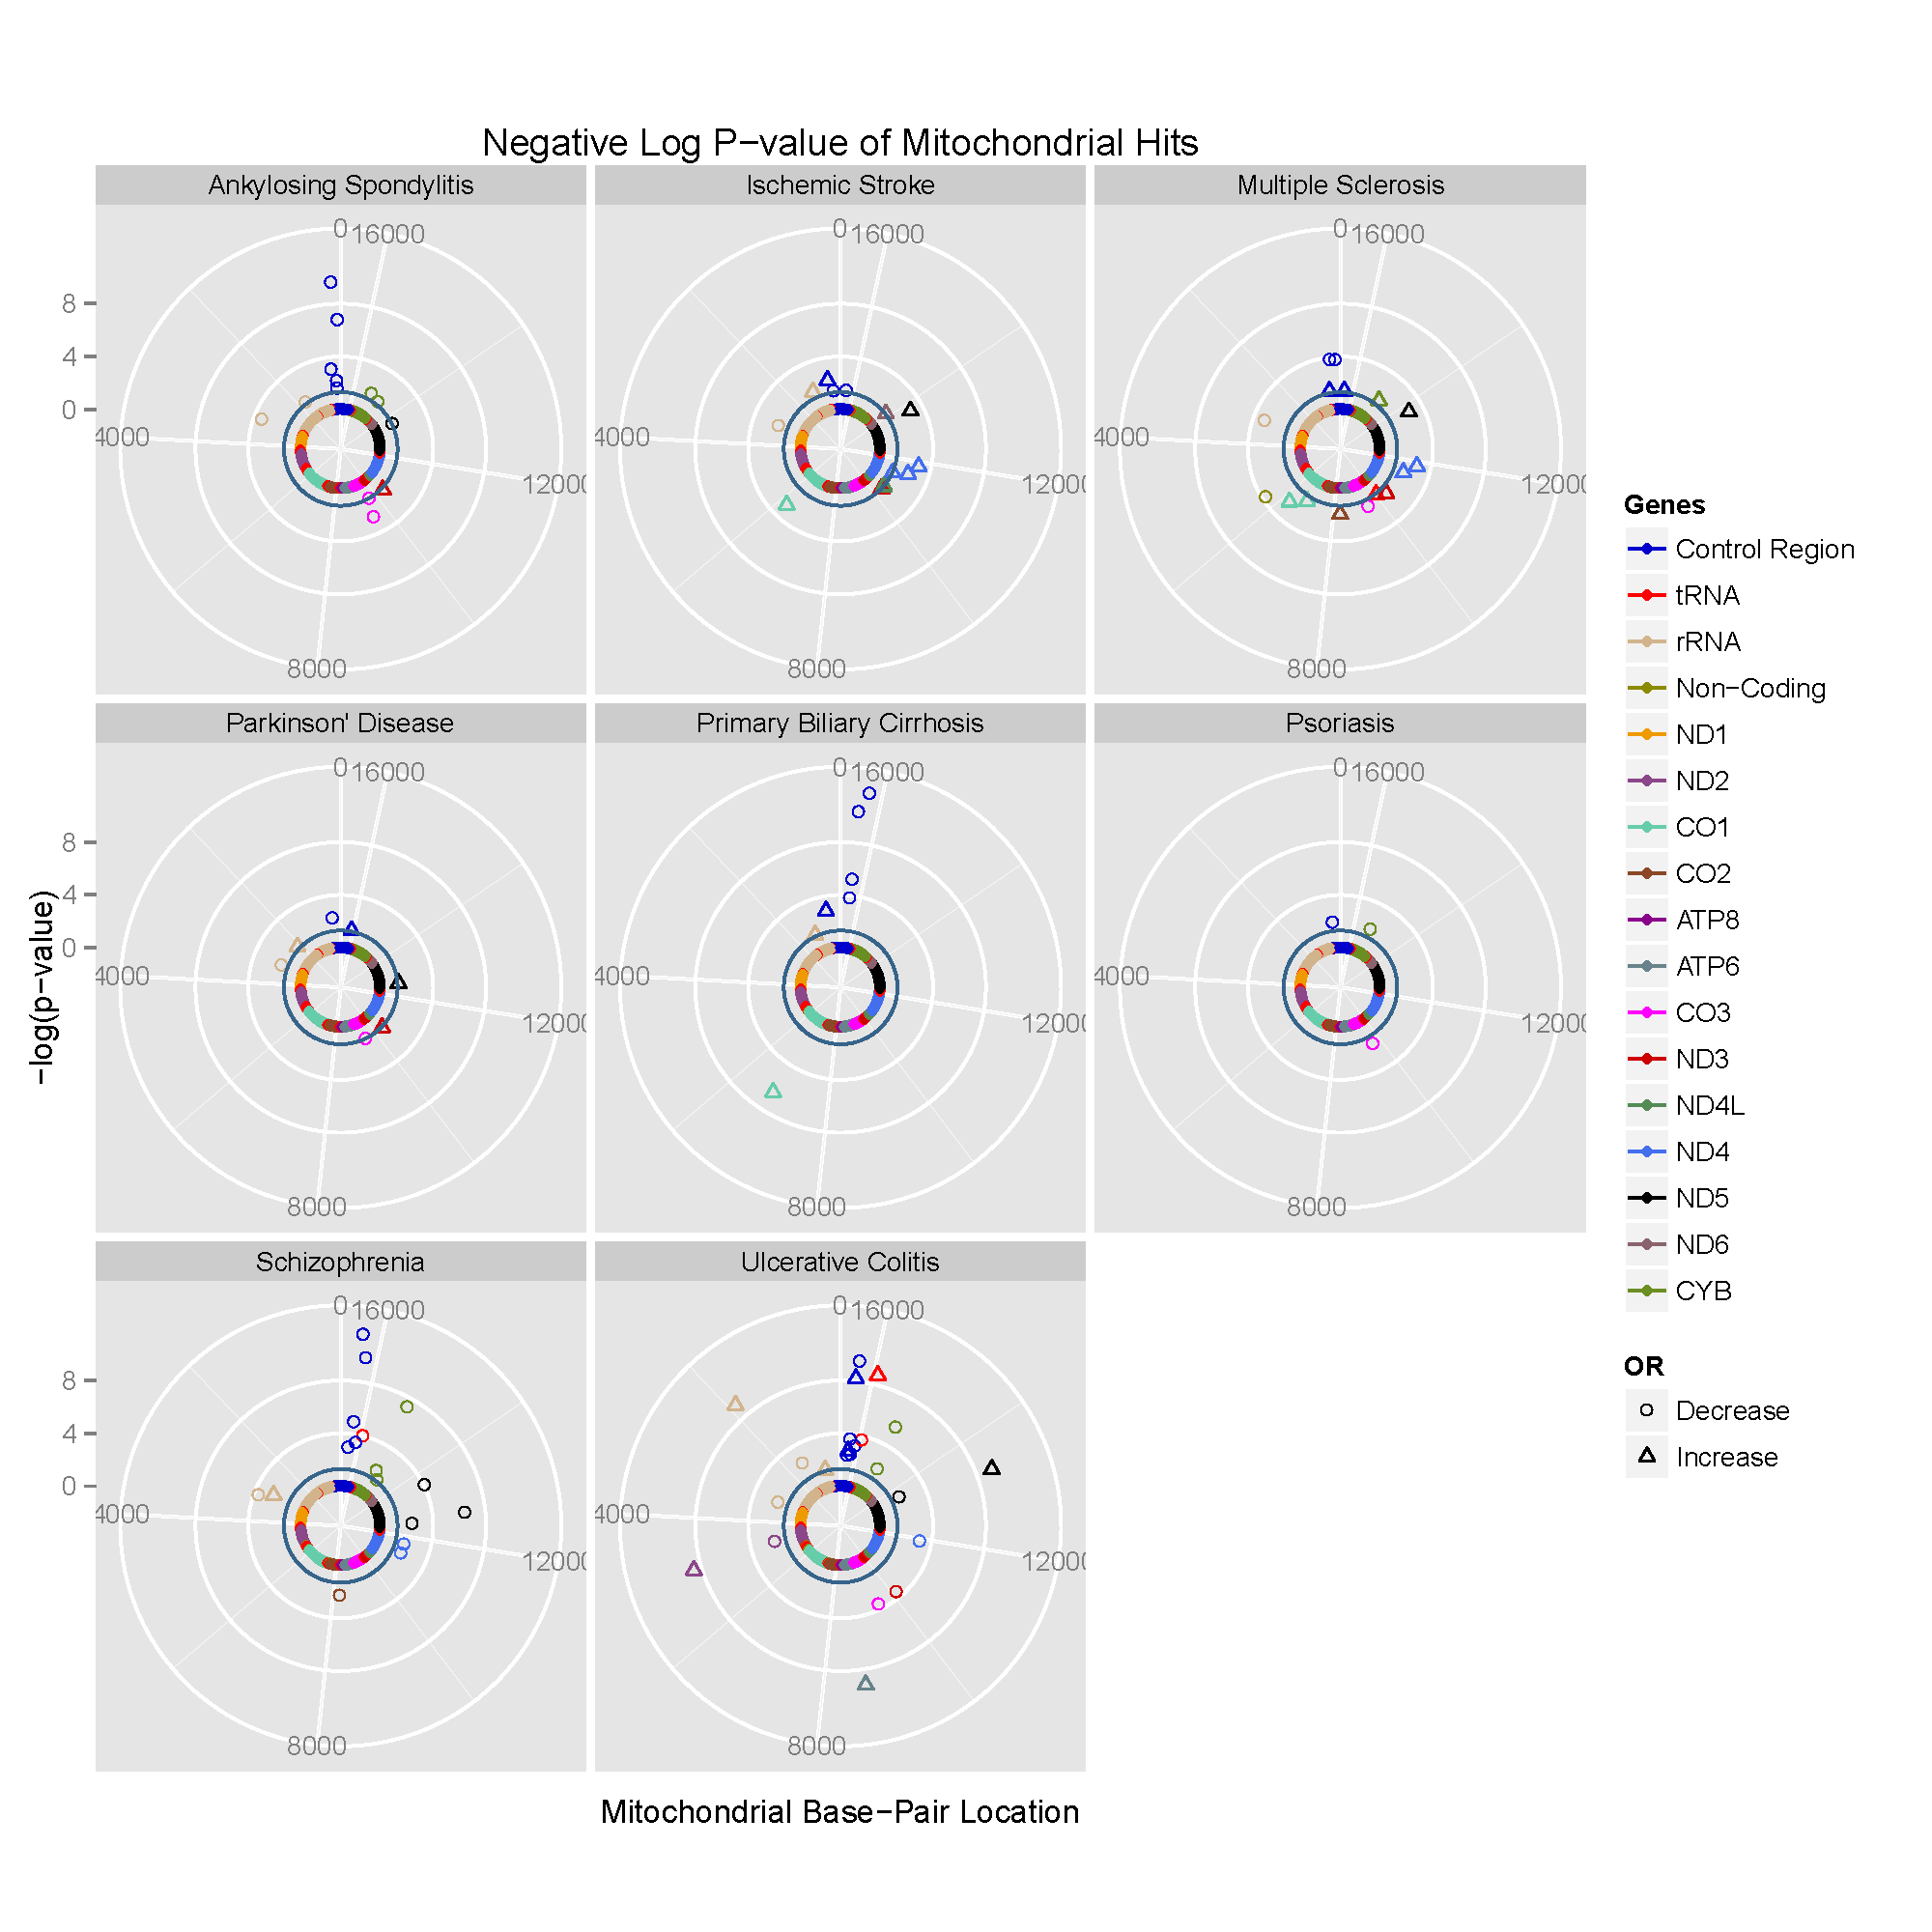 Circularised Manhattan plots of imputed P values showing the association between mtDNA variants and eight complex traits.